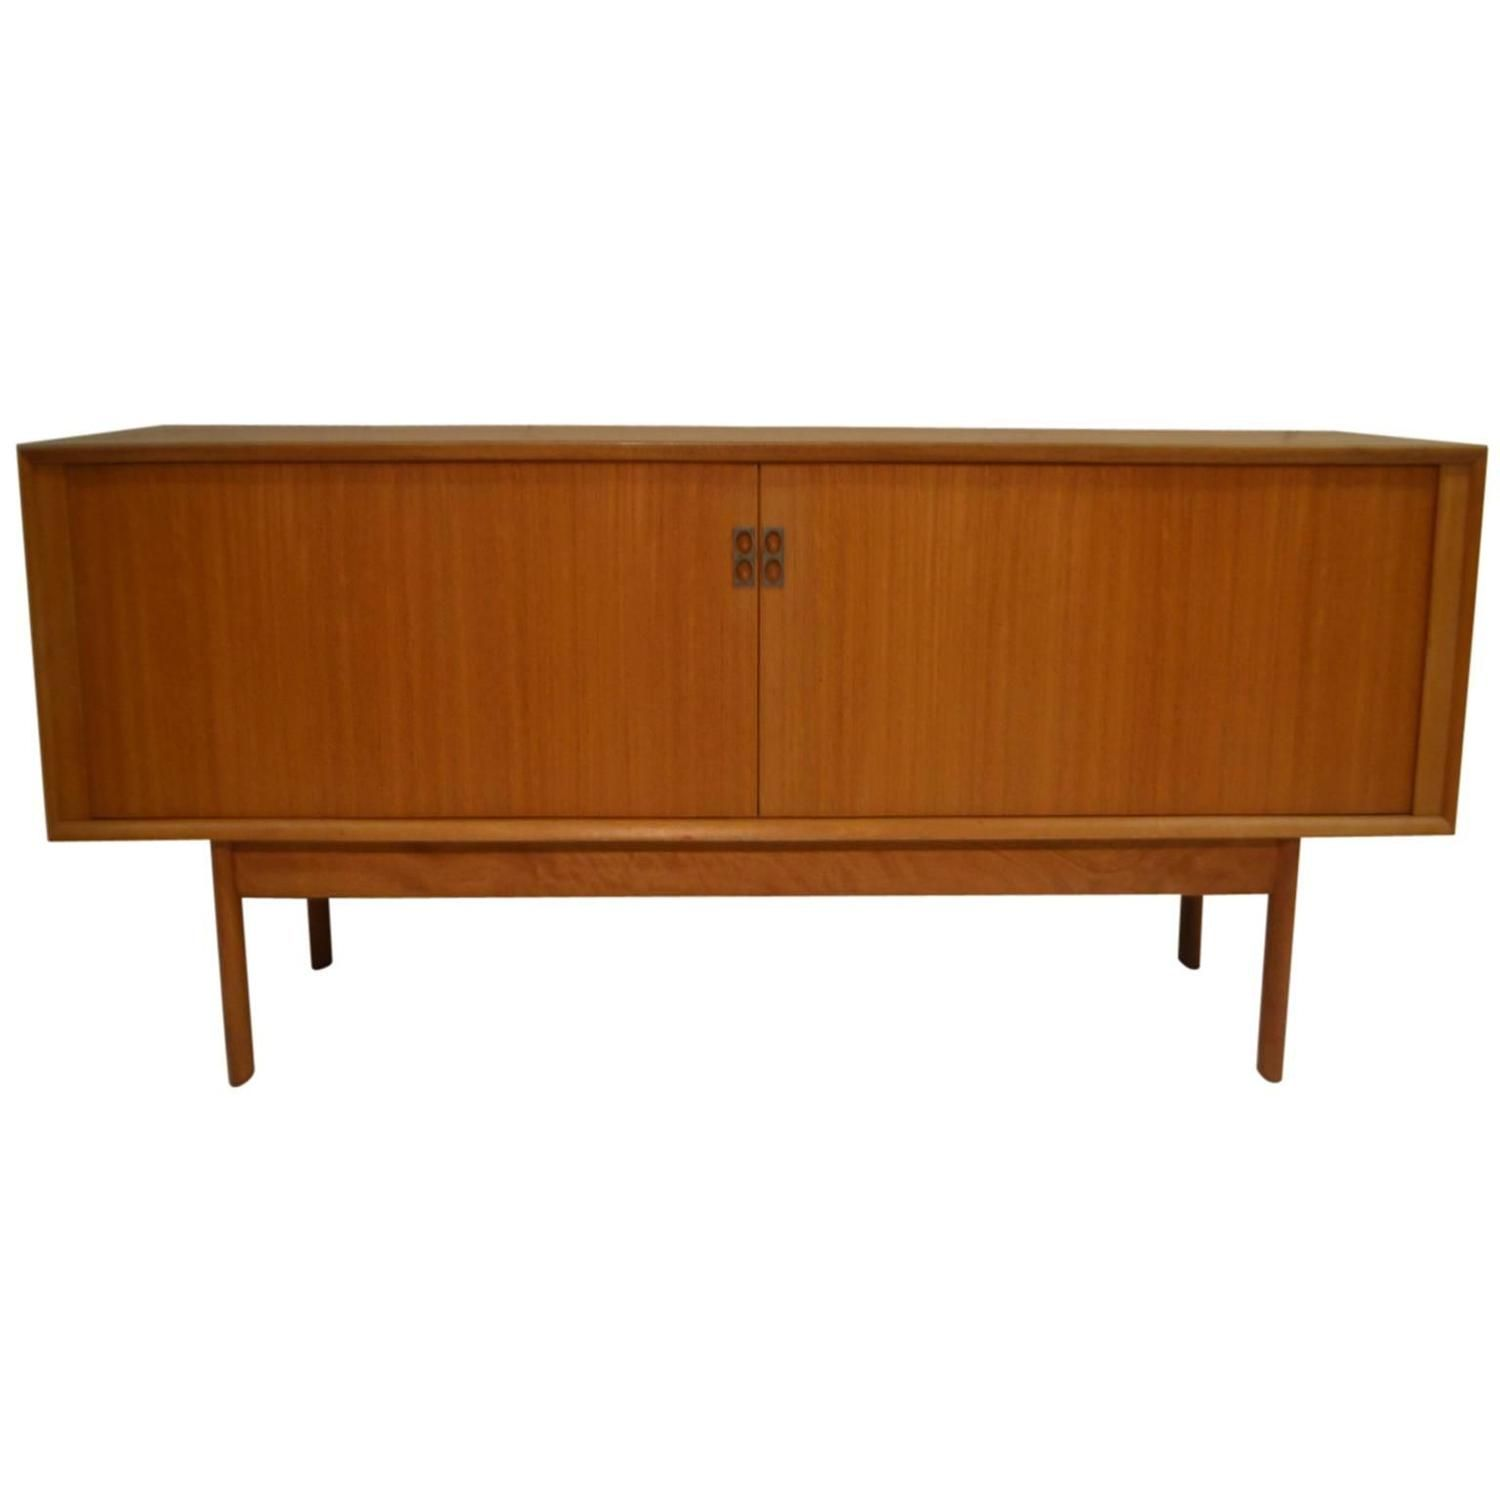 Teak Tambour Door Sideboard with Burlap Door by Arne Vodder for